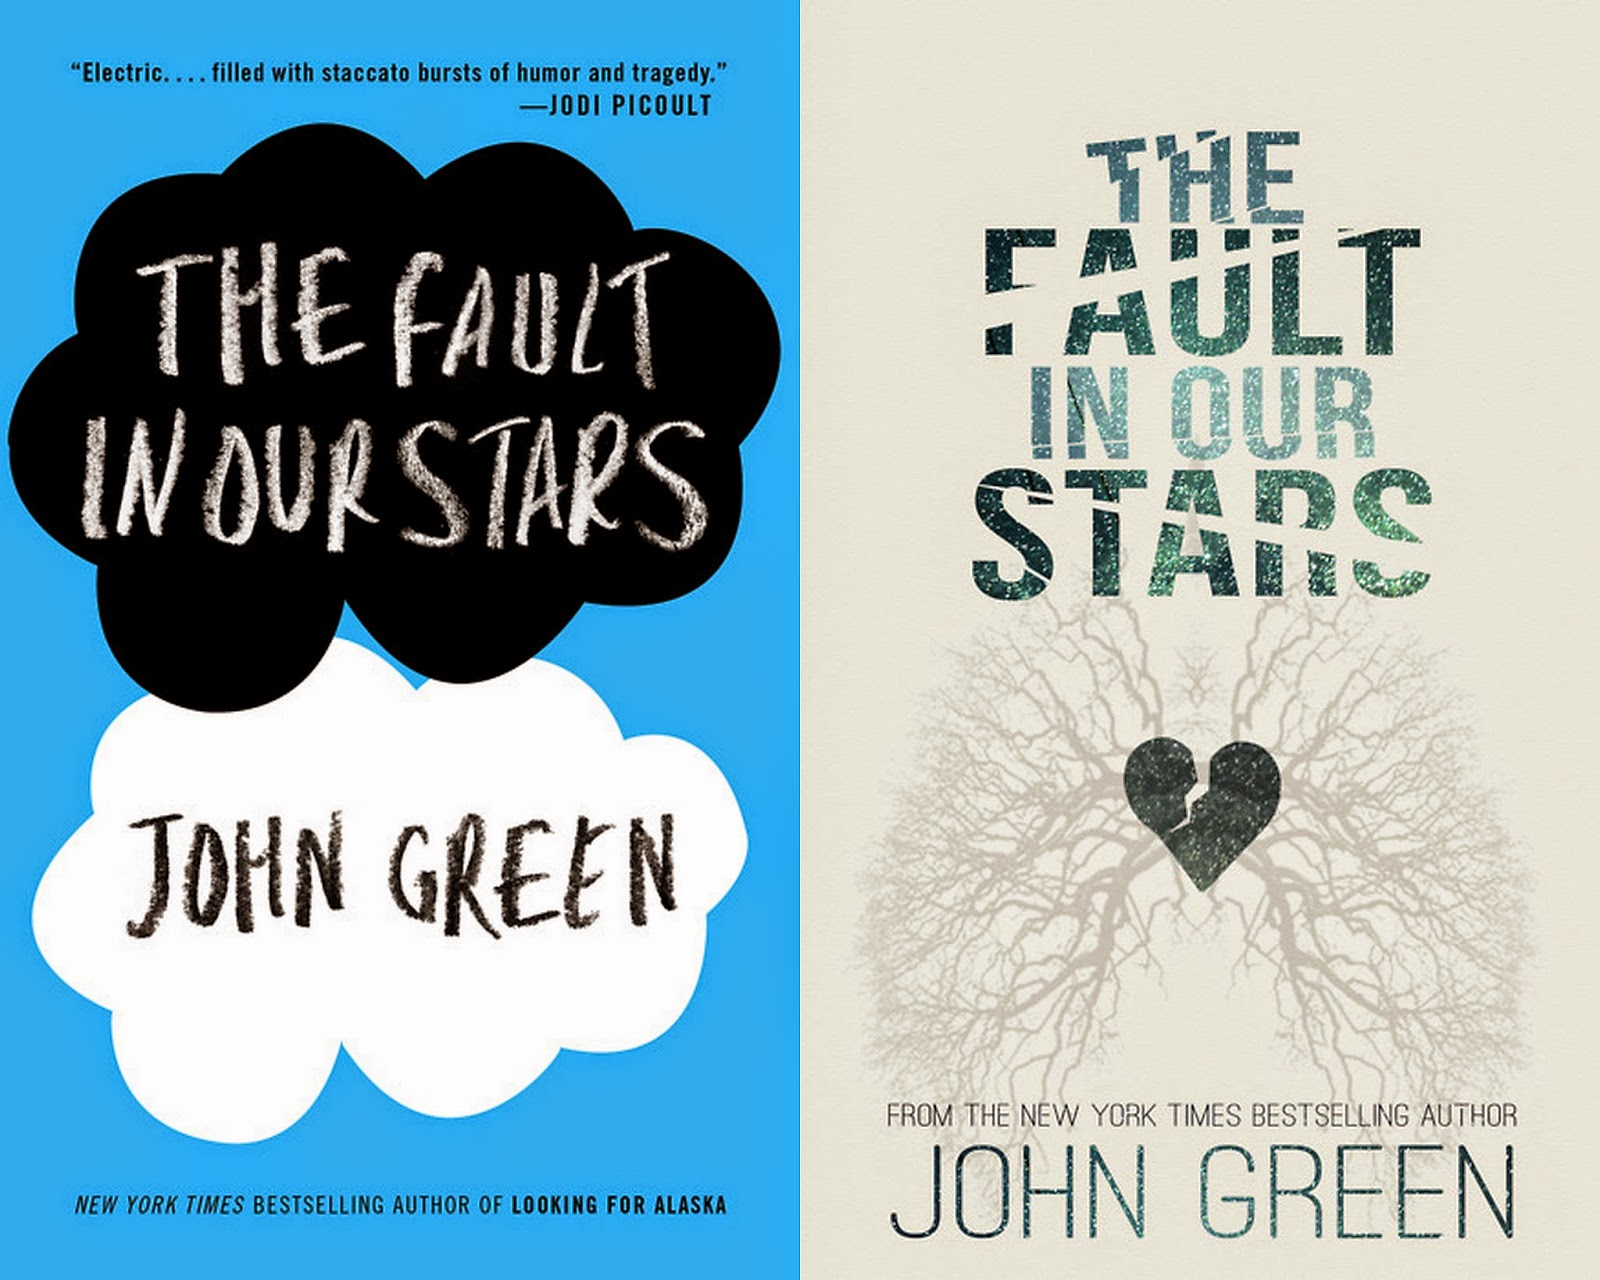 The fault in our stars by john green | ibook pile free download.